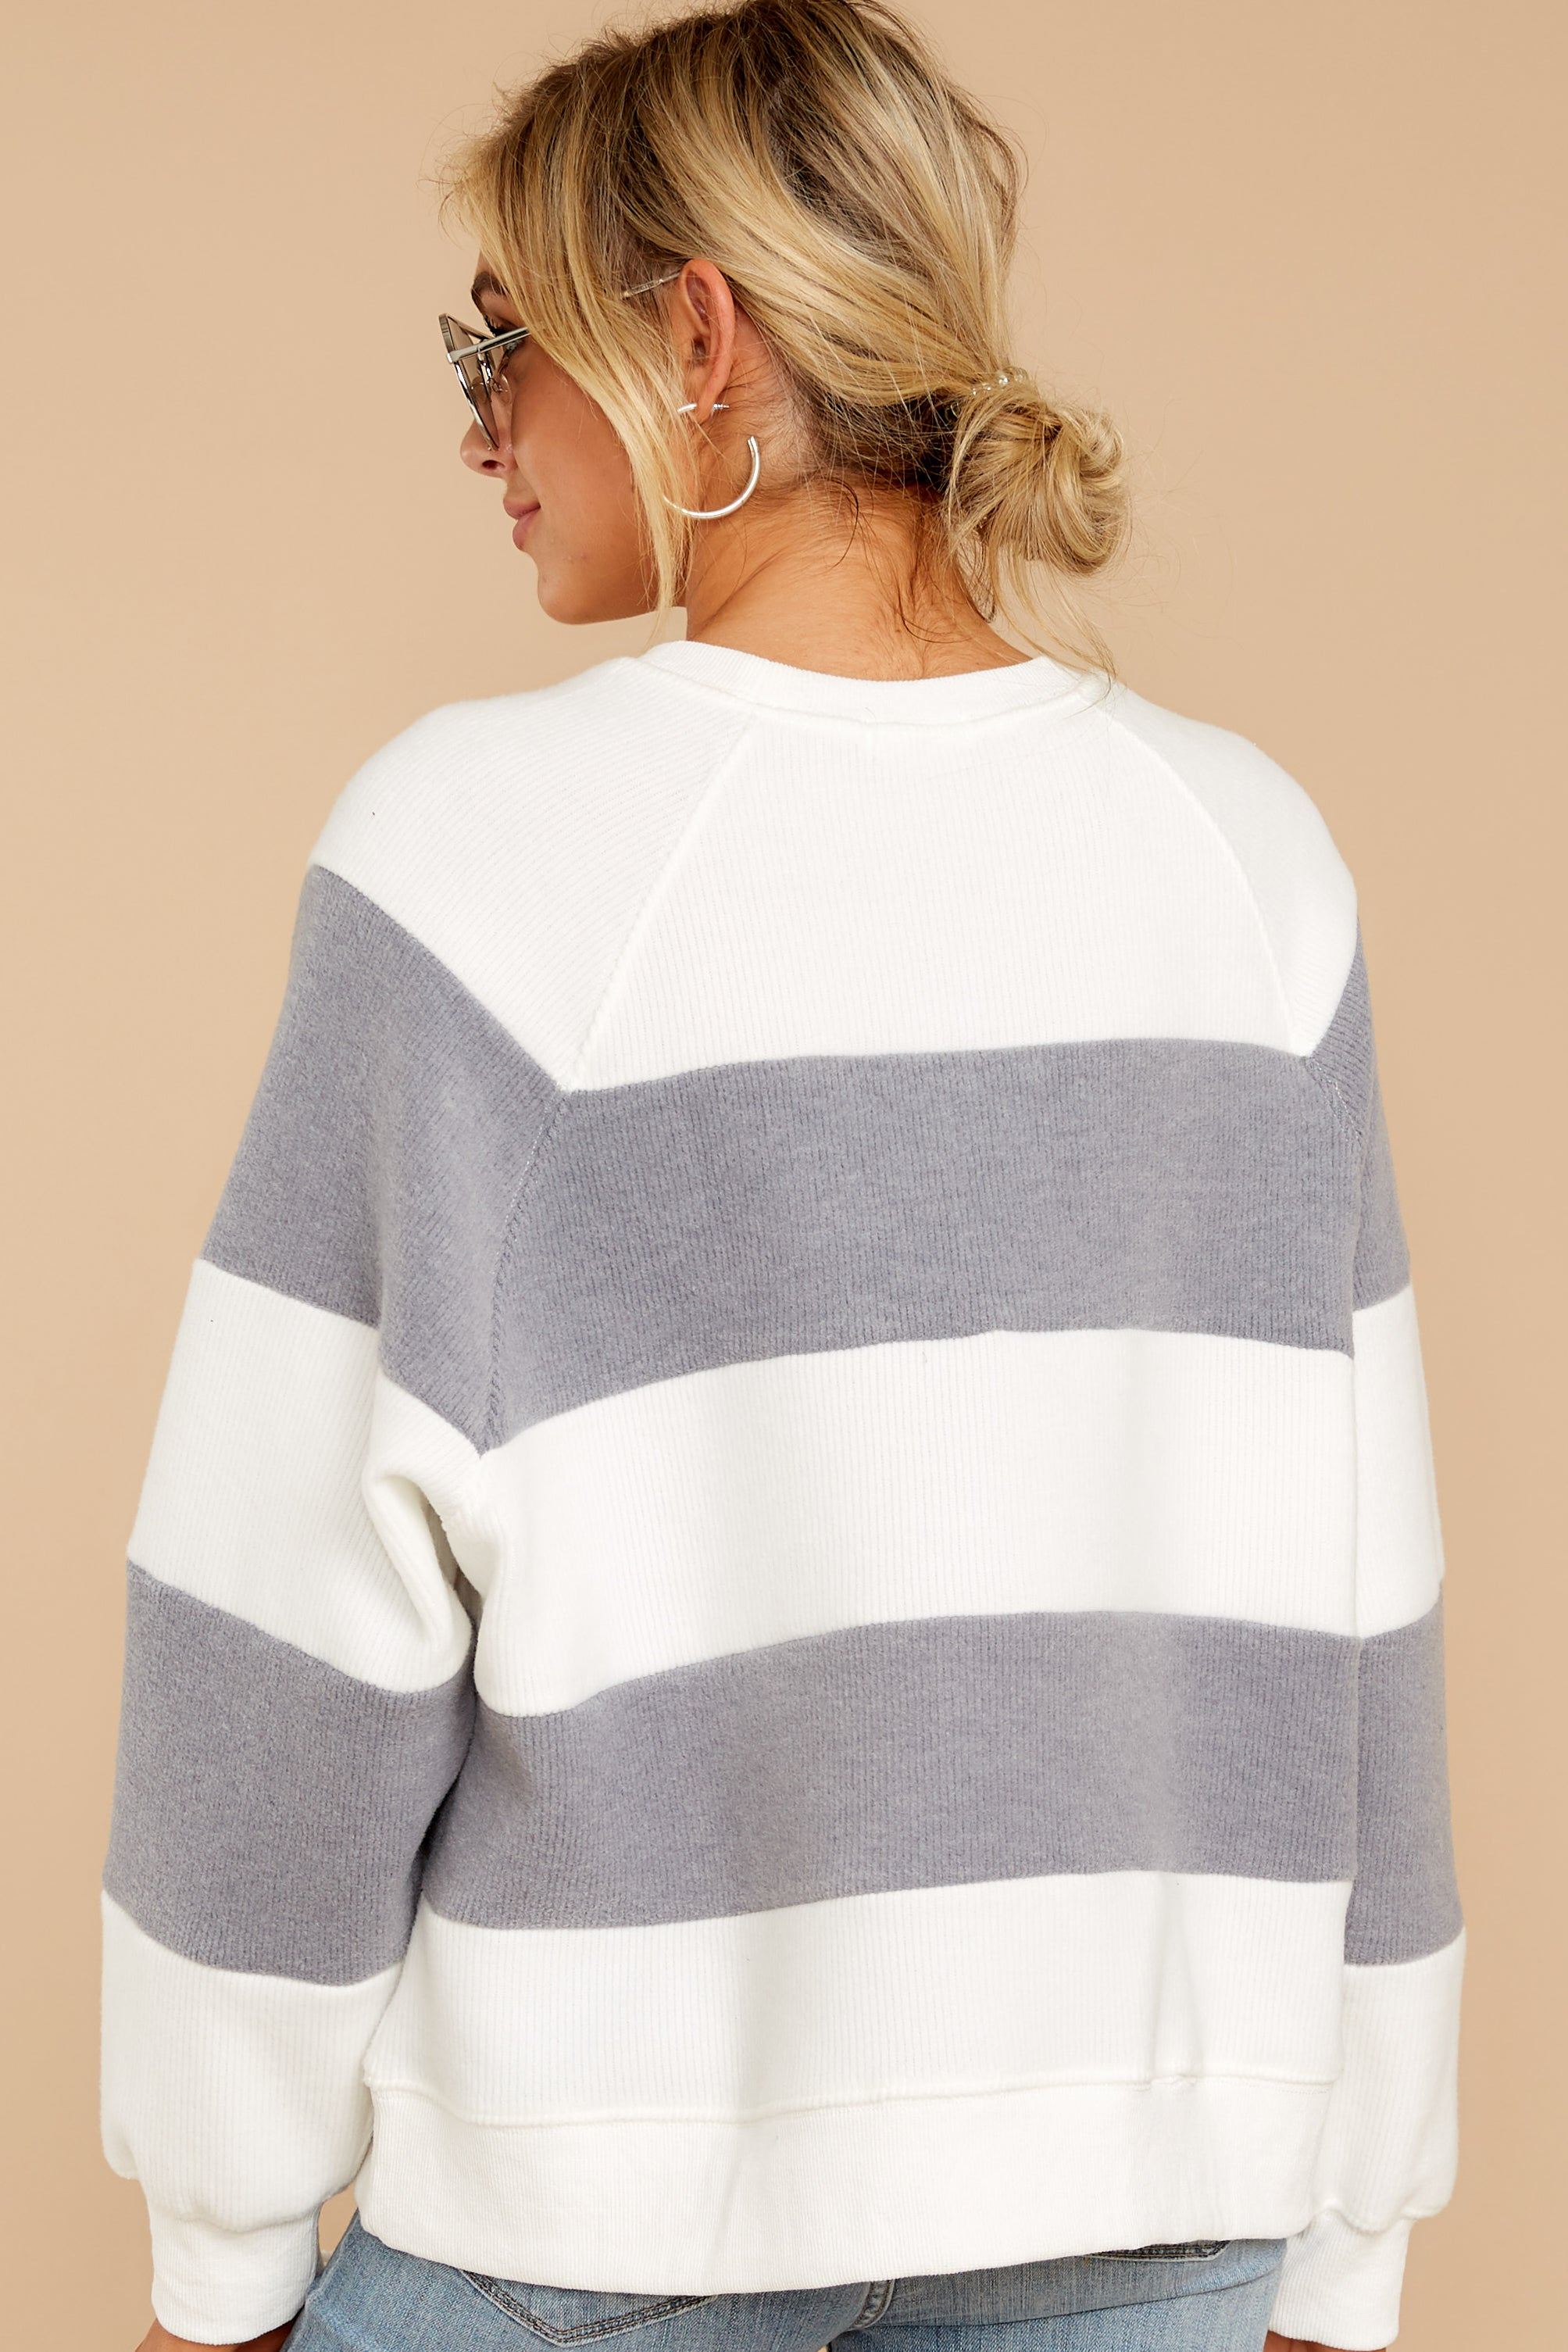 7 One More Thing Grey And White Stripe Pullover at reddressboutique.com